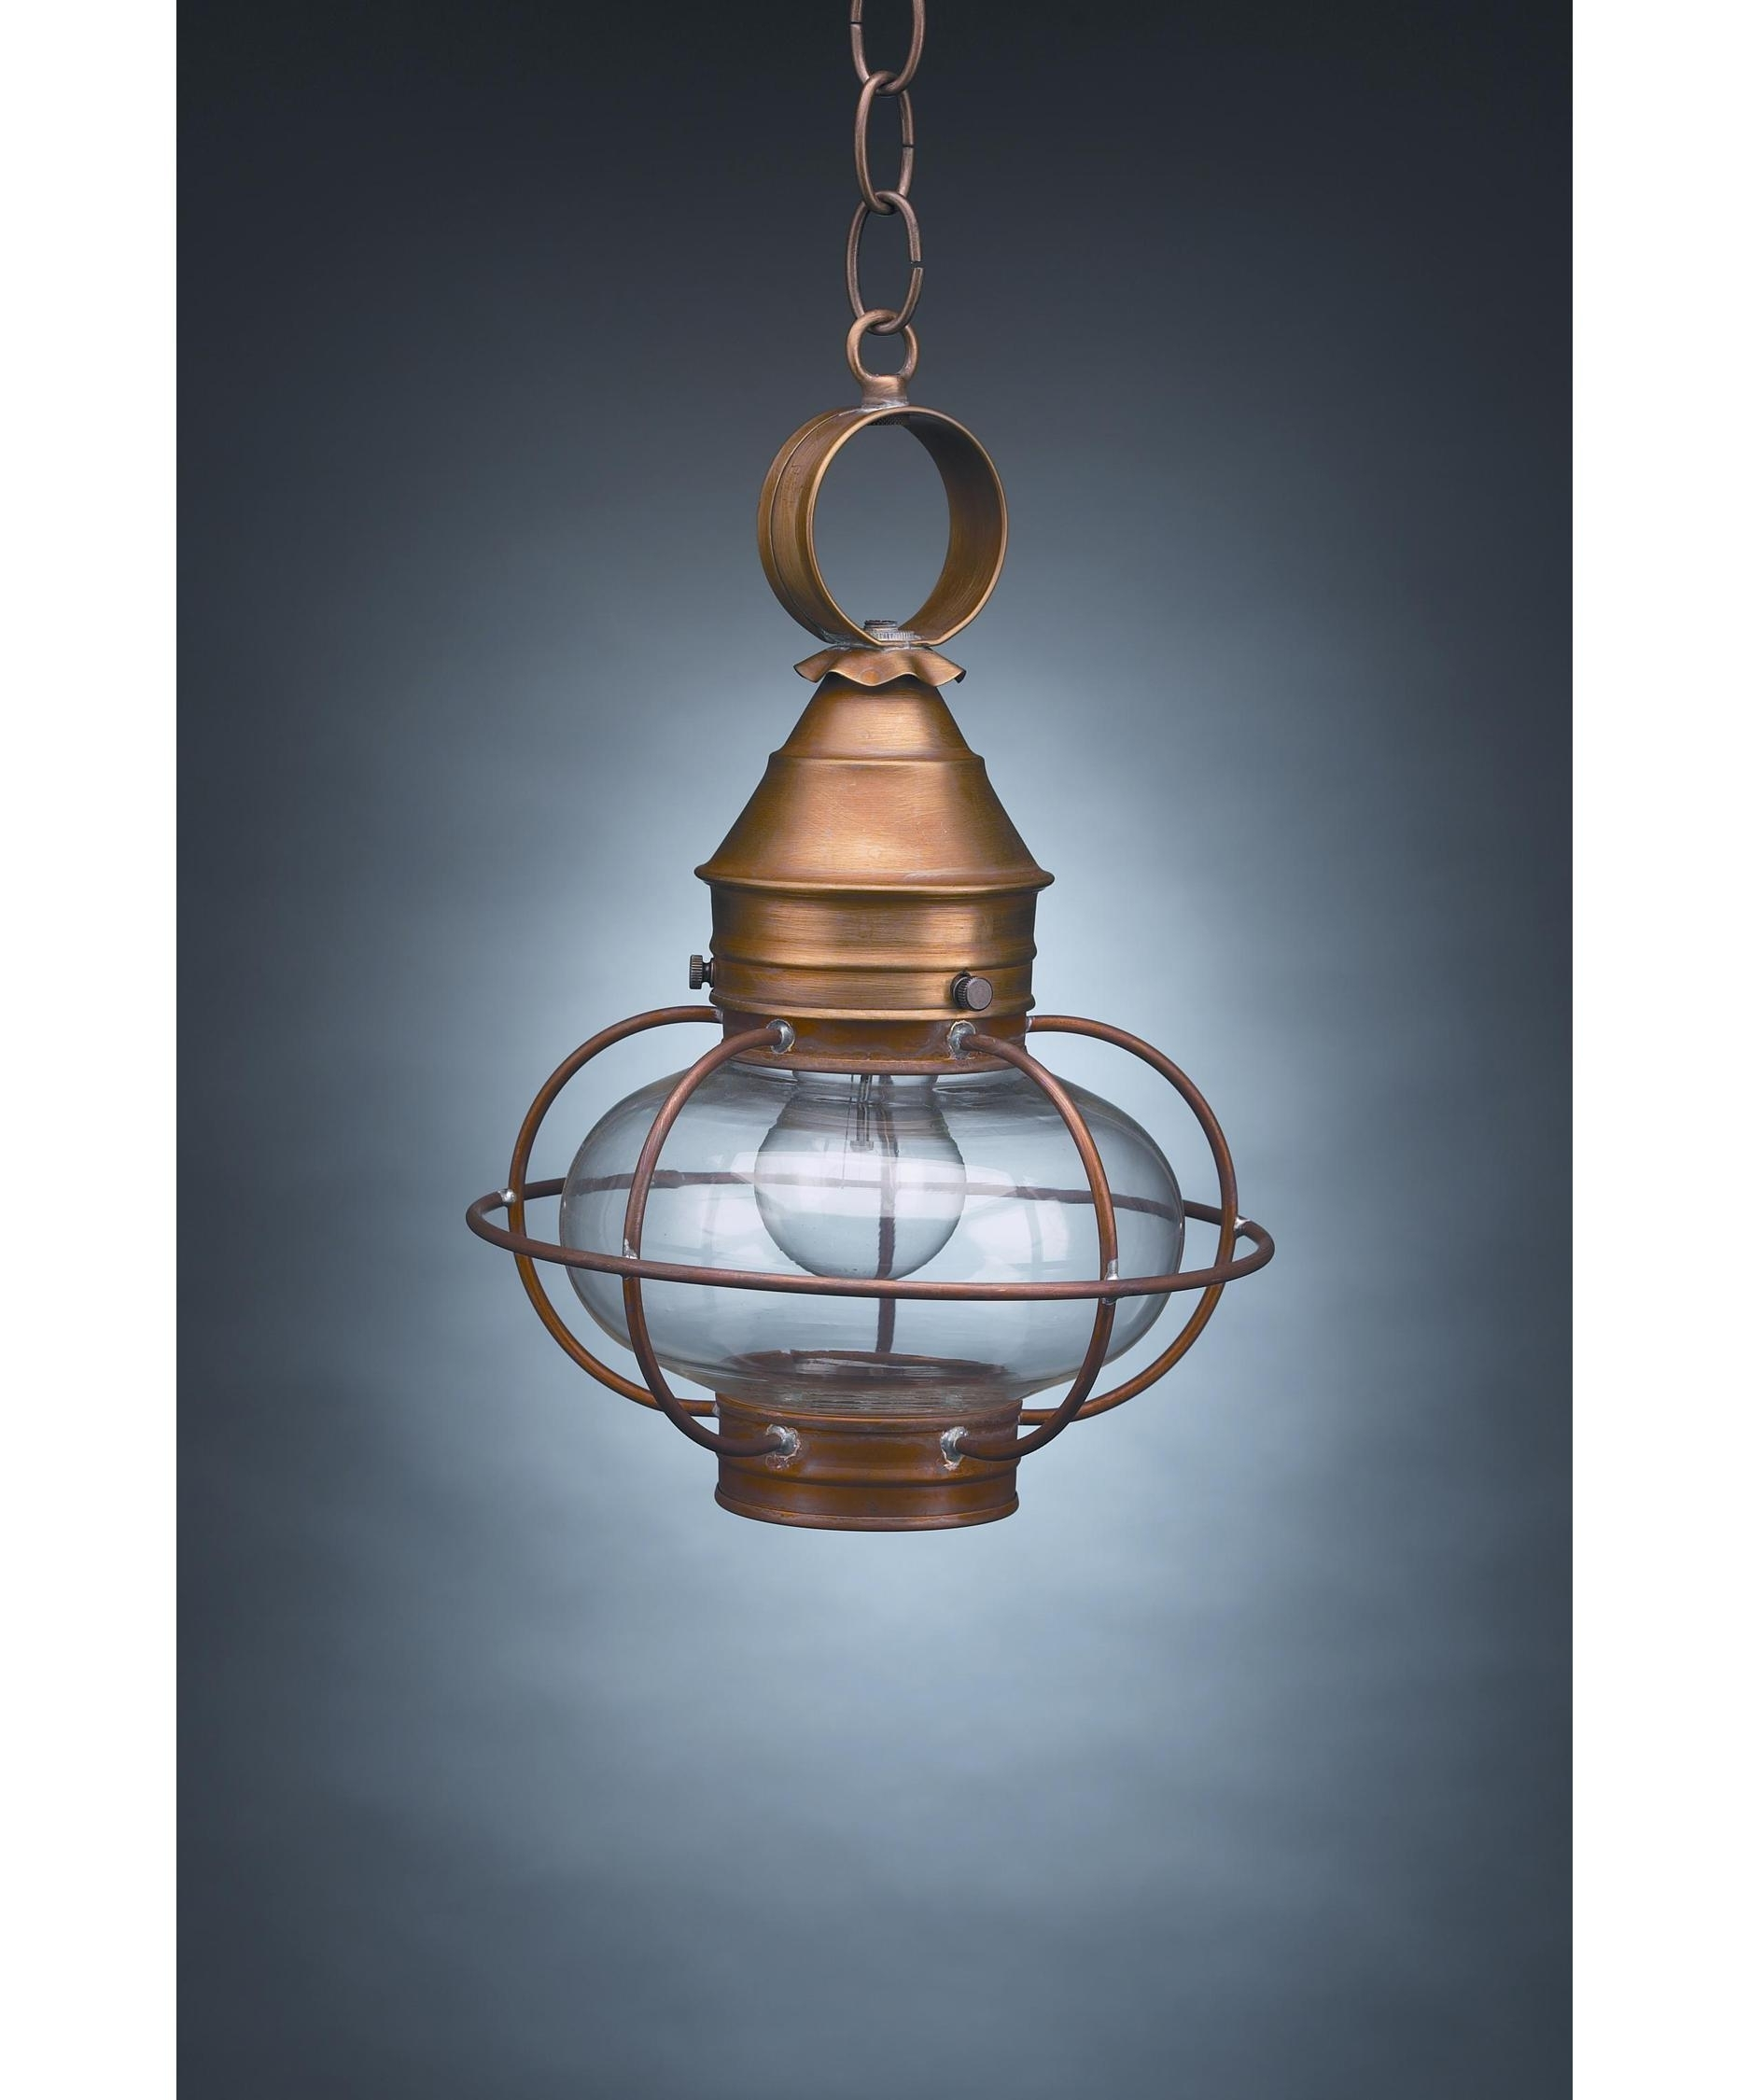 Northeast Lantern 2522 Med Onion 9 Inch Wide 1 Light Outdoor Hanging Pertaining To Hanging Outdoor Onion Lights (#9 of 15)